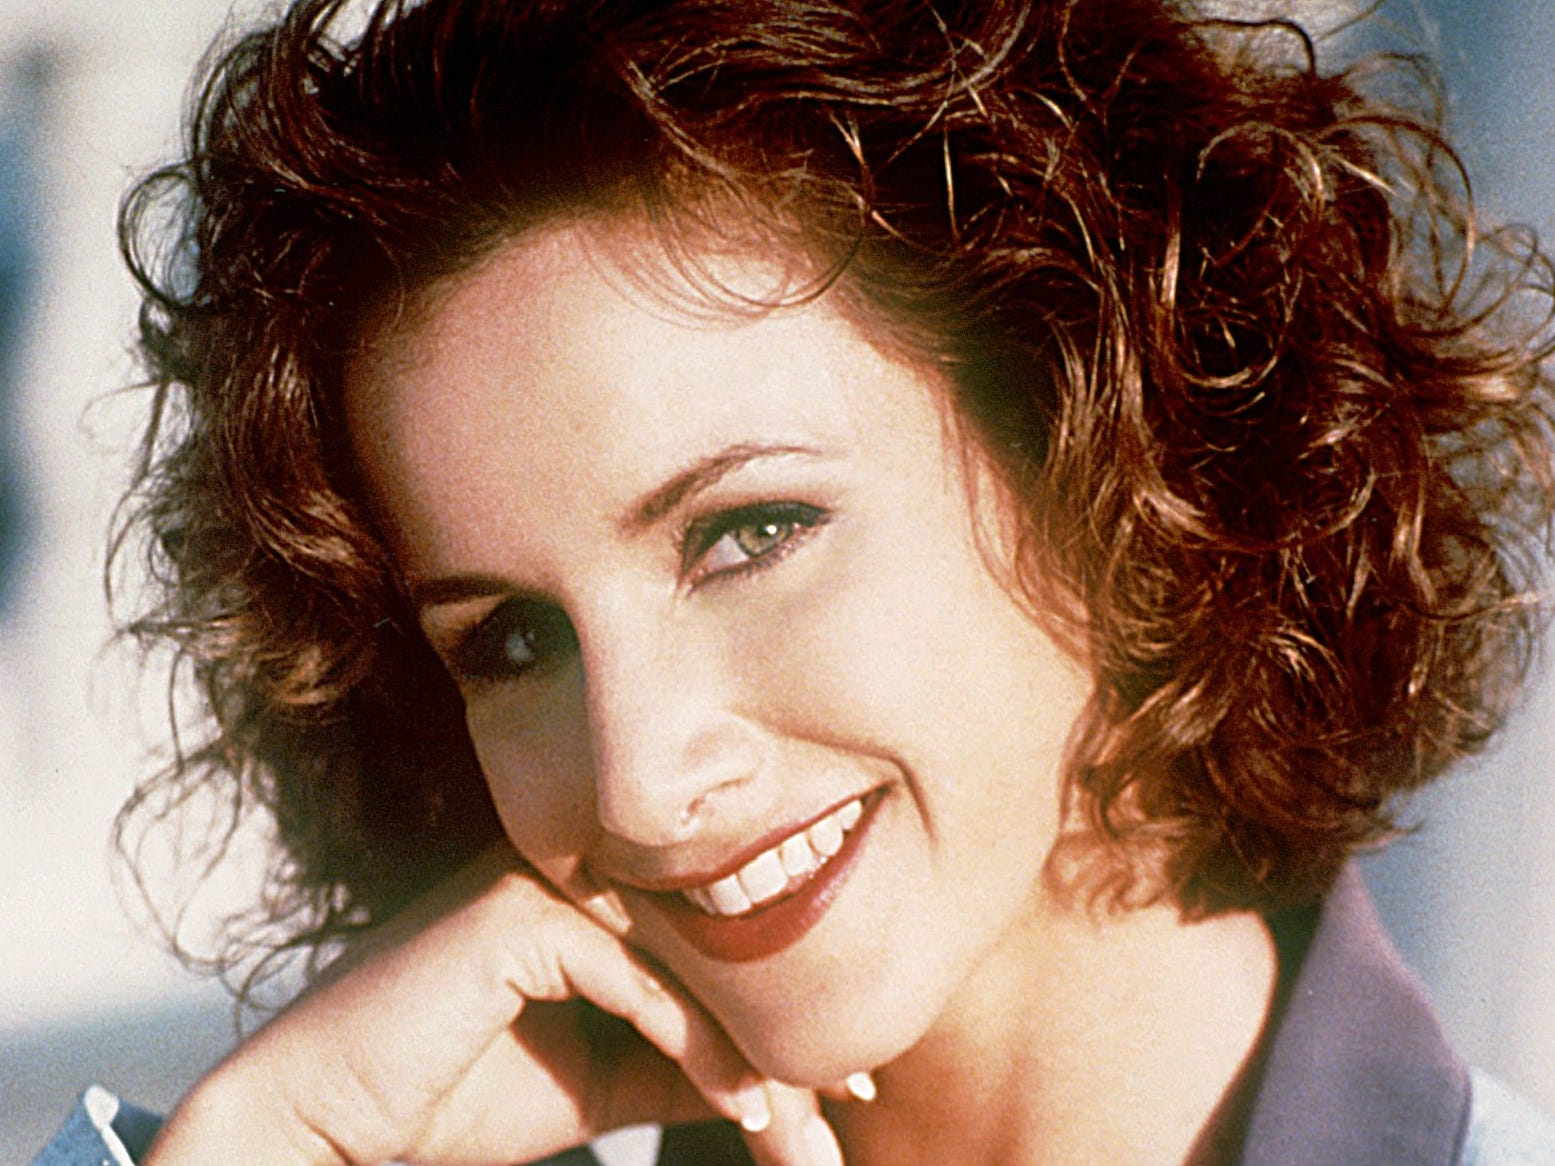 Gabrielle Carteris was 29 when she debuted as Andrea Zuckerman, the editor of the West Beverly High School newspaper and valedictorian. Accepted at Yale, she declined and attended the fictional California University with her friends. Andrea fell in love with and married her old resident advisor. They had a daughter together and moved to Connecticut, where she finally did attend Yale. Carteris later returned as a guest star in later years, including a Season 10 episode where she returned for Donna's bachelorette party and revealed she was about to be divorced.